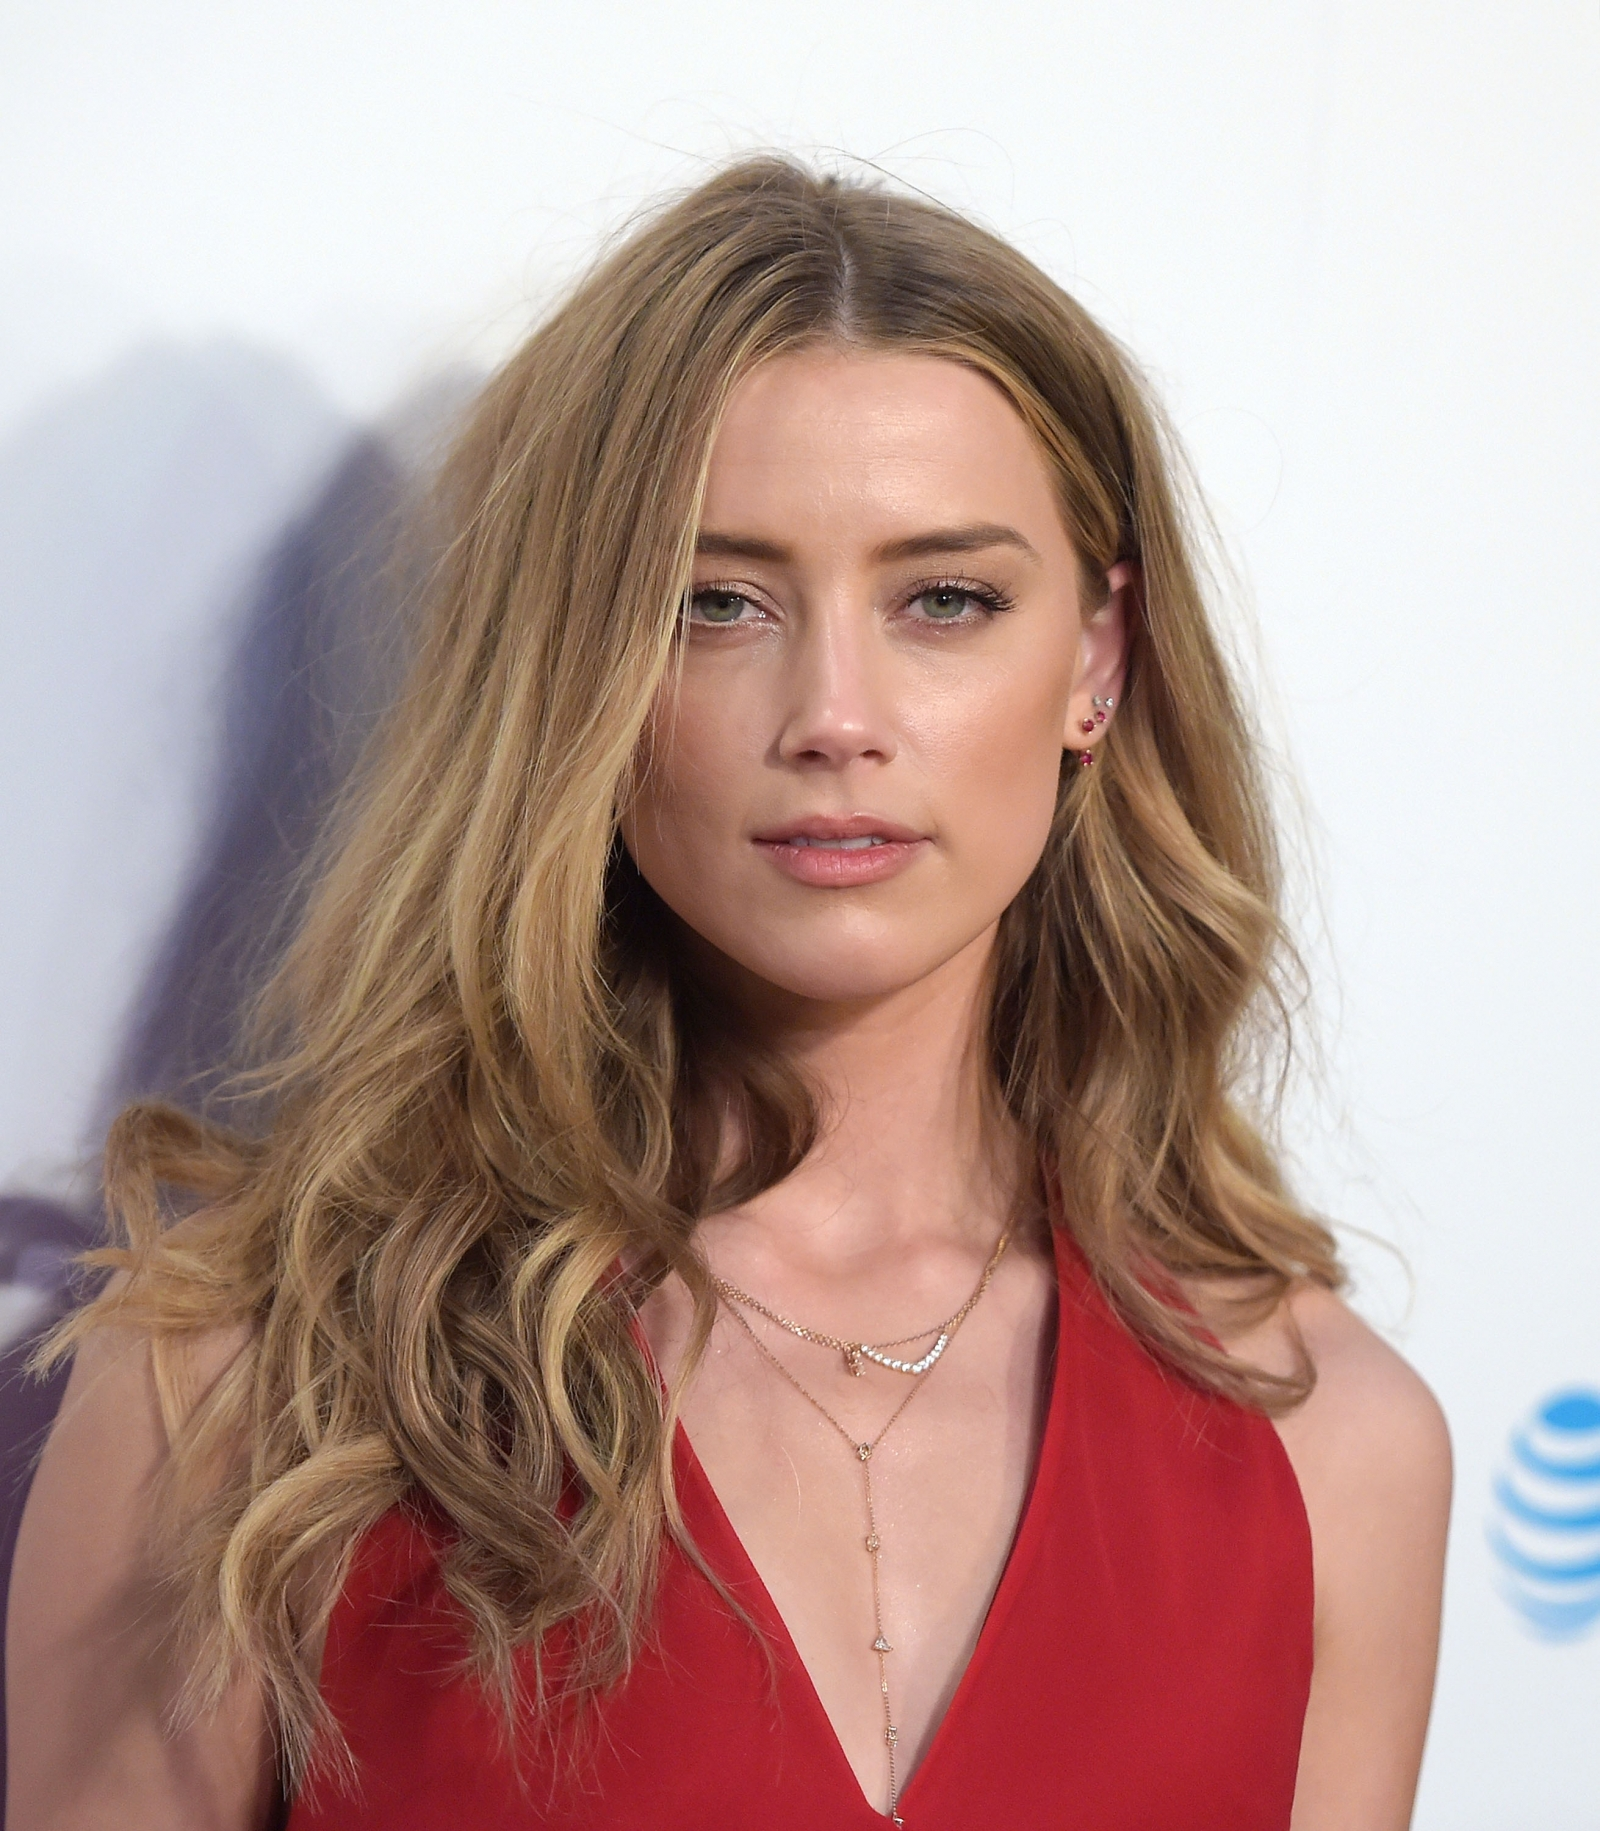 Amber Heard has listed her earnings and expenditures for 2016 in court ...